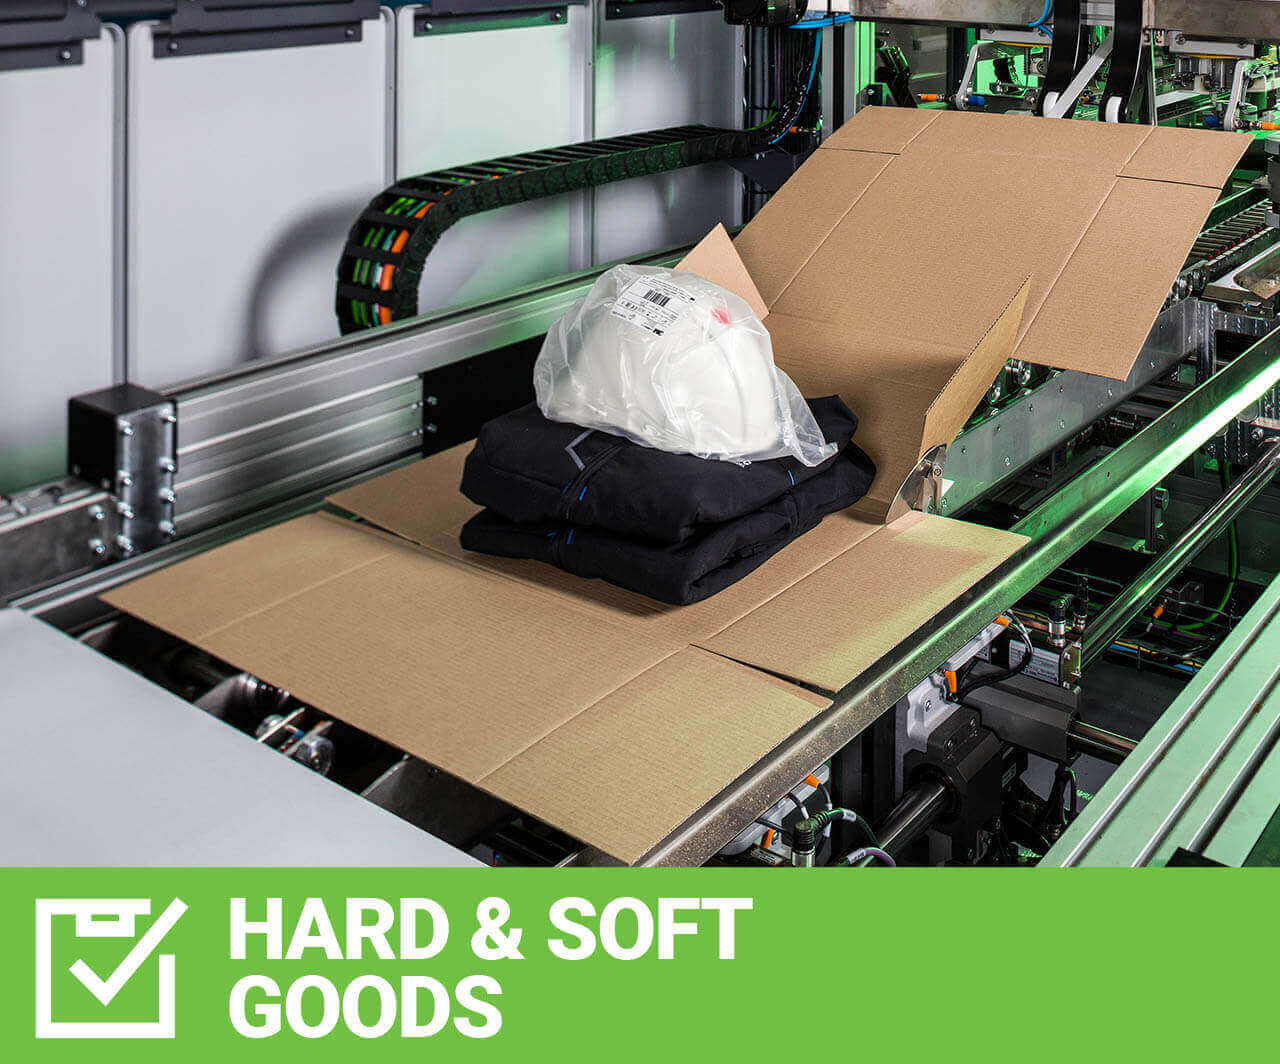 2-HARD-SOFT-GOODS